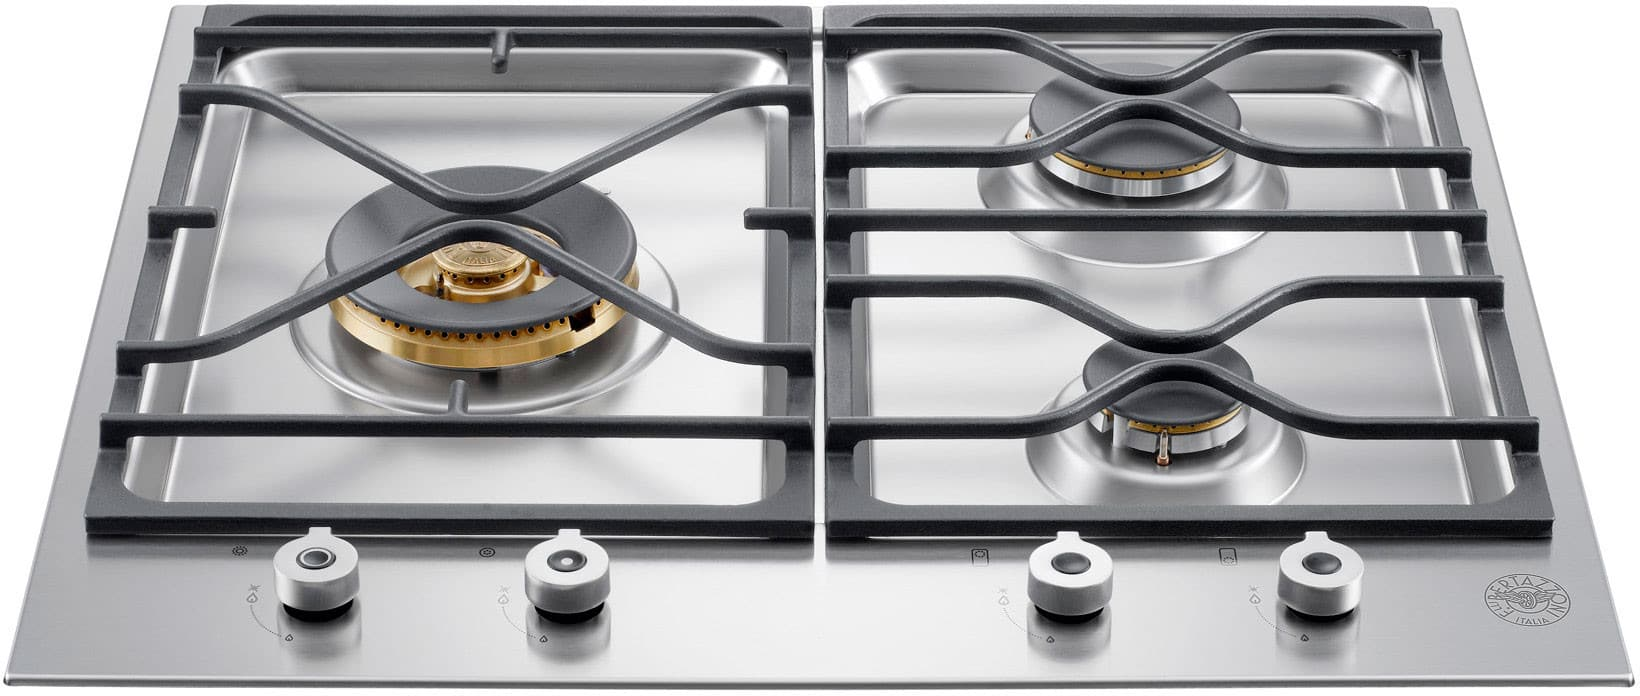 Bertazzoni Pmb24300x 24 Inch Gas Cooktop With 3 Sealed